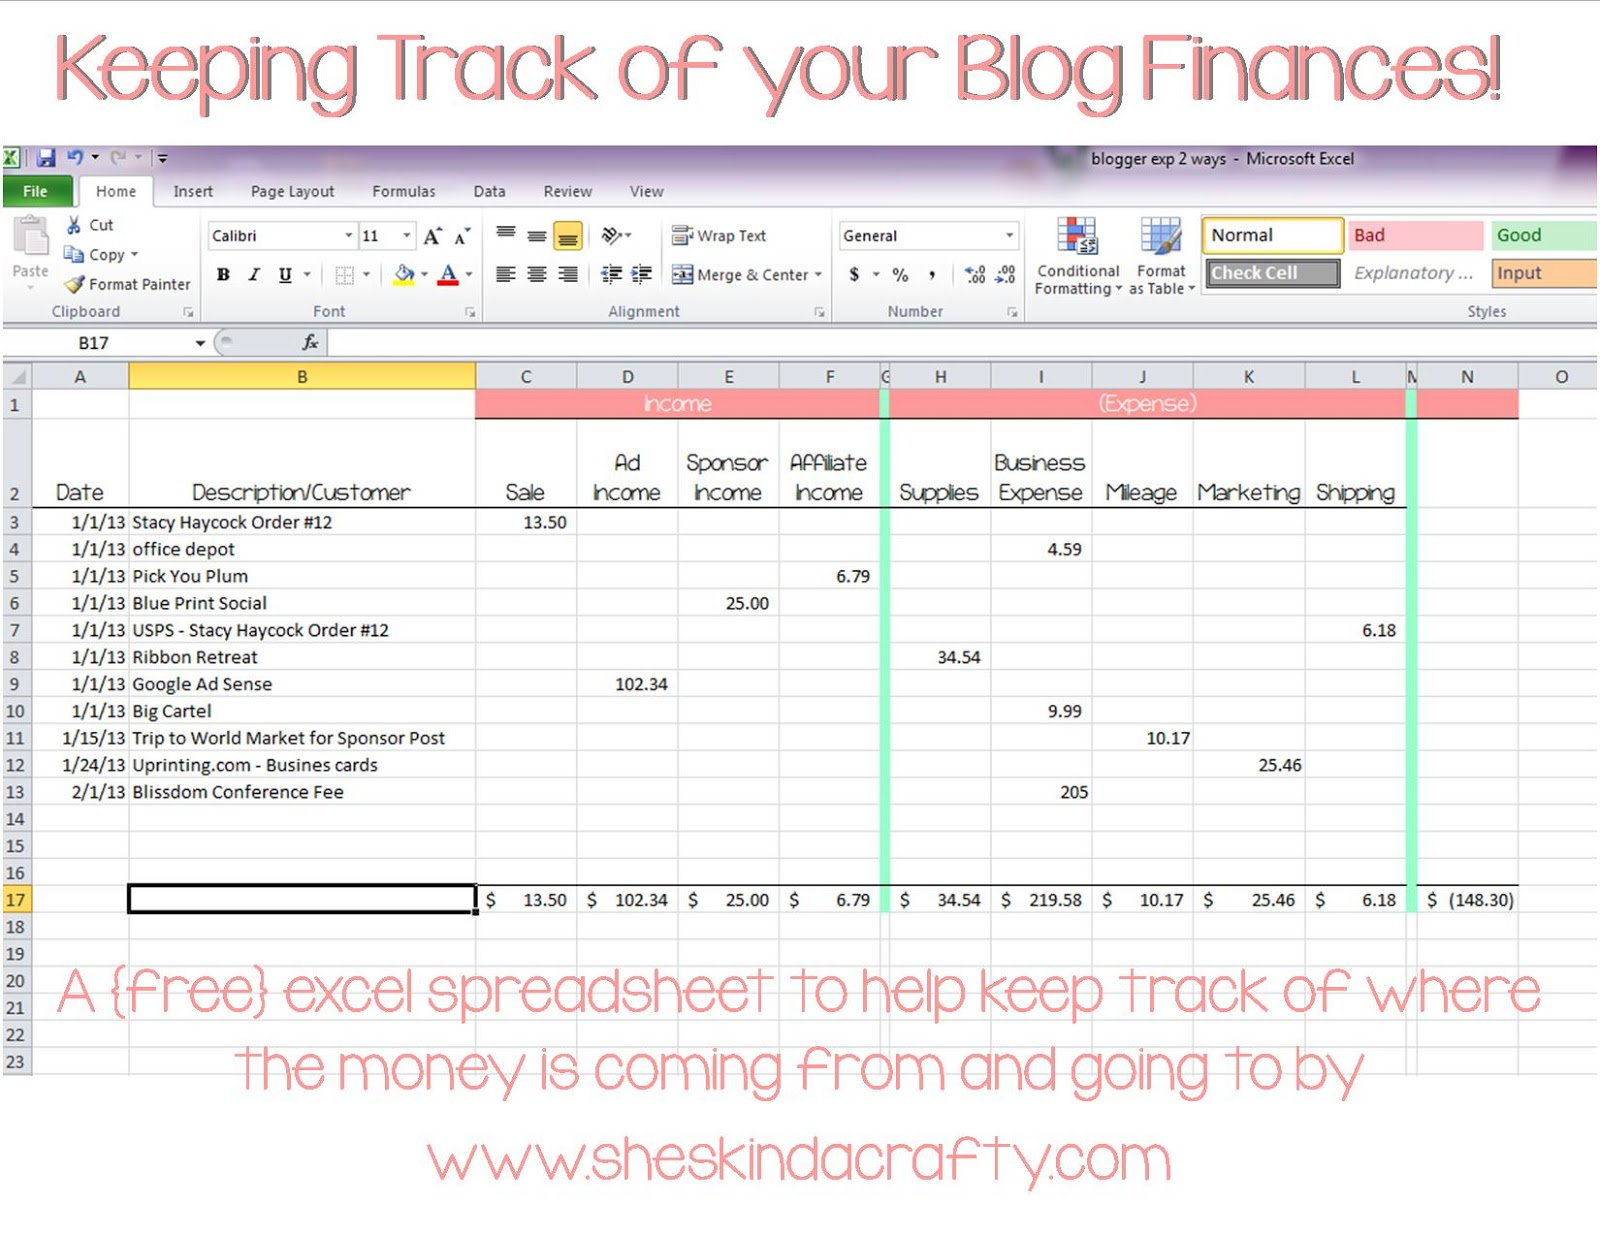 How To Make A Spreadsheet In Excel 2010 Throughout Expense Report Template Excel 2010 And With Plus Together As Well